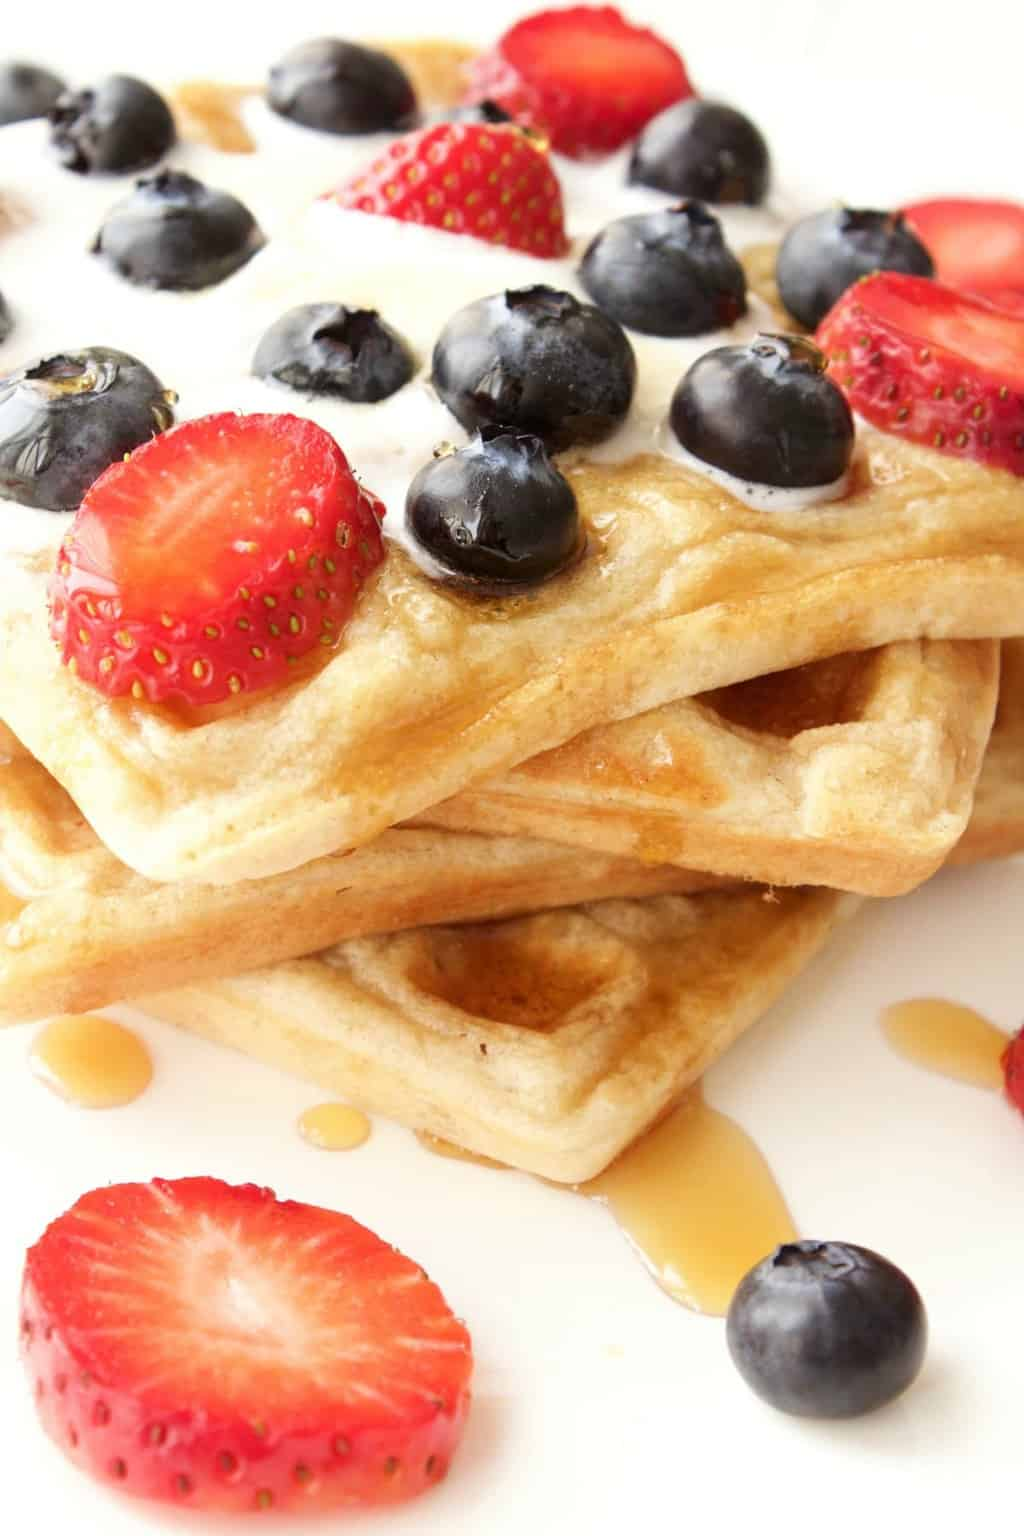 Vegan waffles topped with vegan cream, maple syrup, strawberries and blueberries, on a white plate.